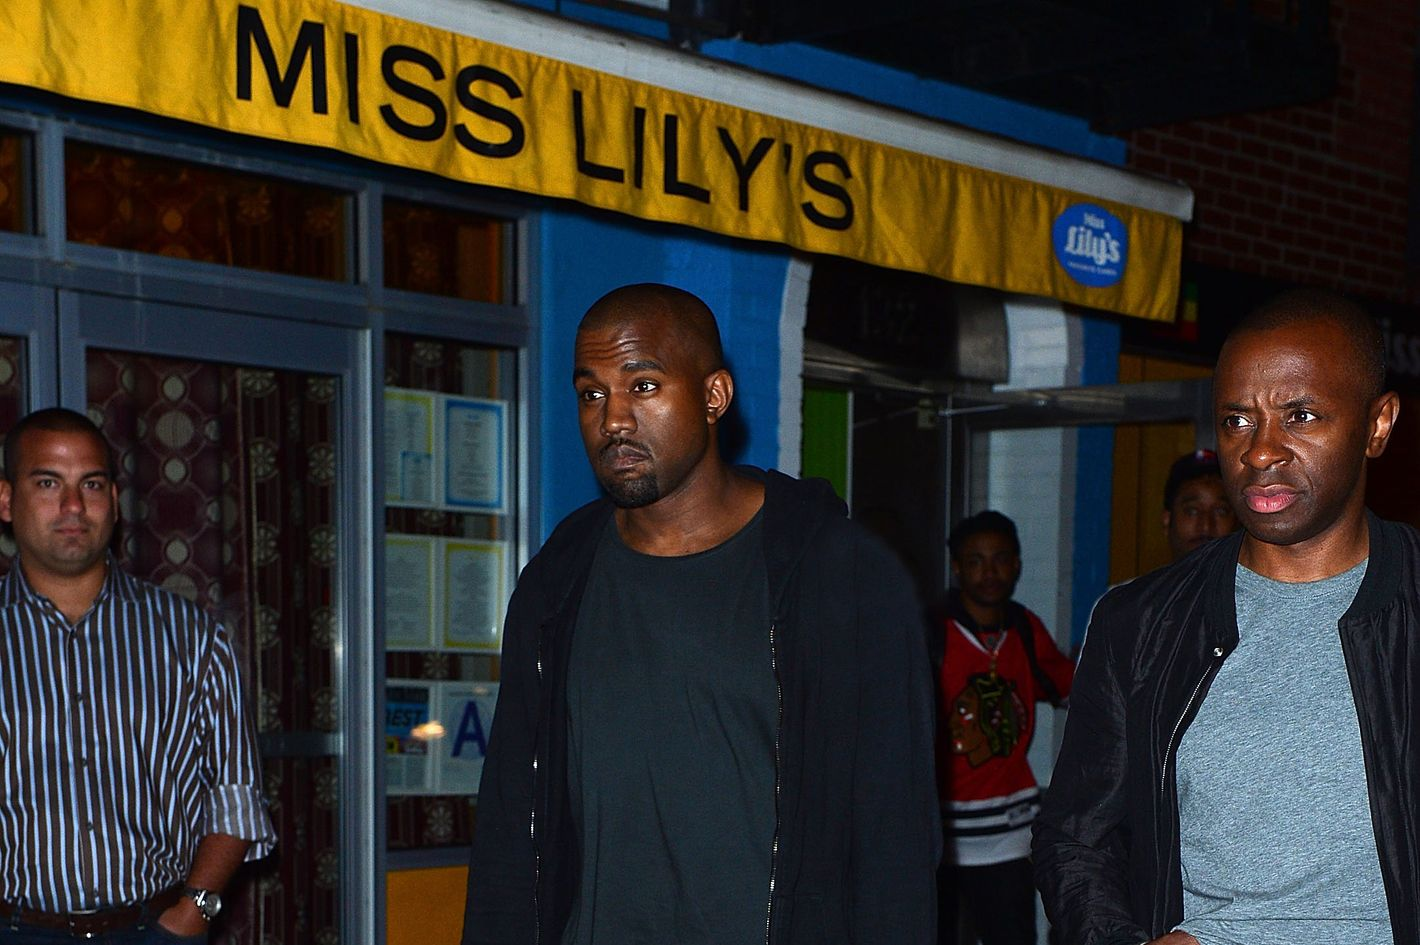 7a62738e42 Kanye Brings Bey and Jay to Miss Lily s  Heidi Klum Stumbles Out of the  Spotted Pig